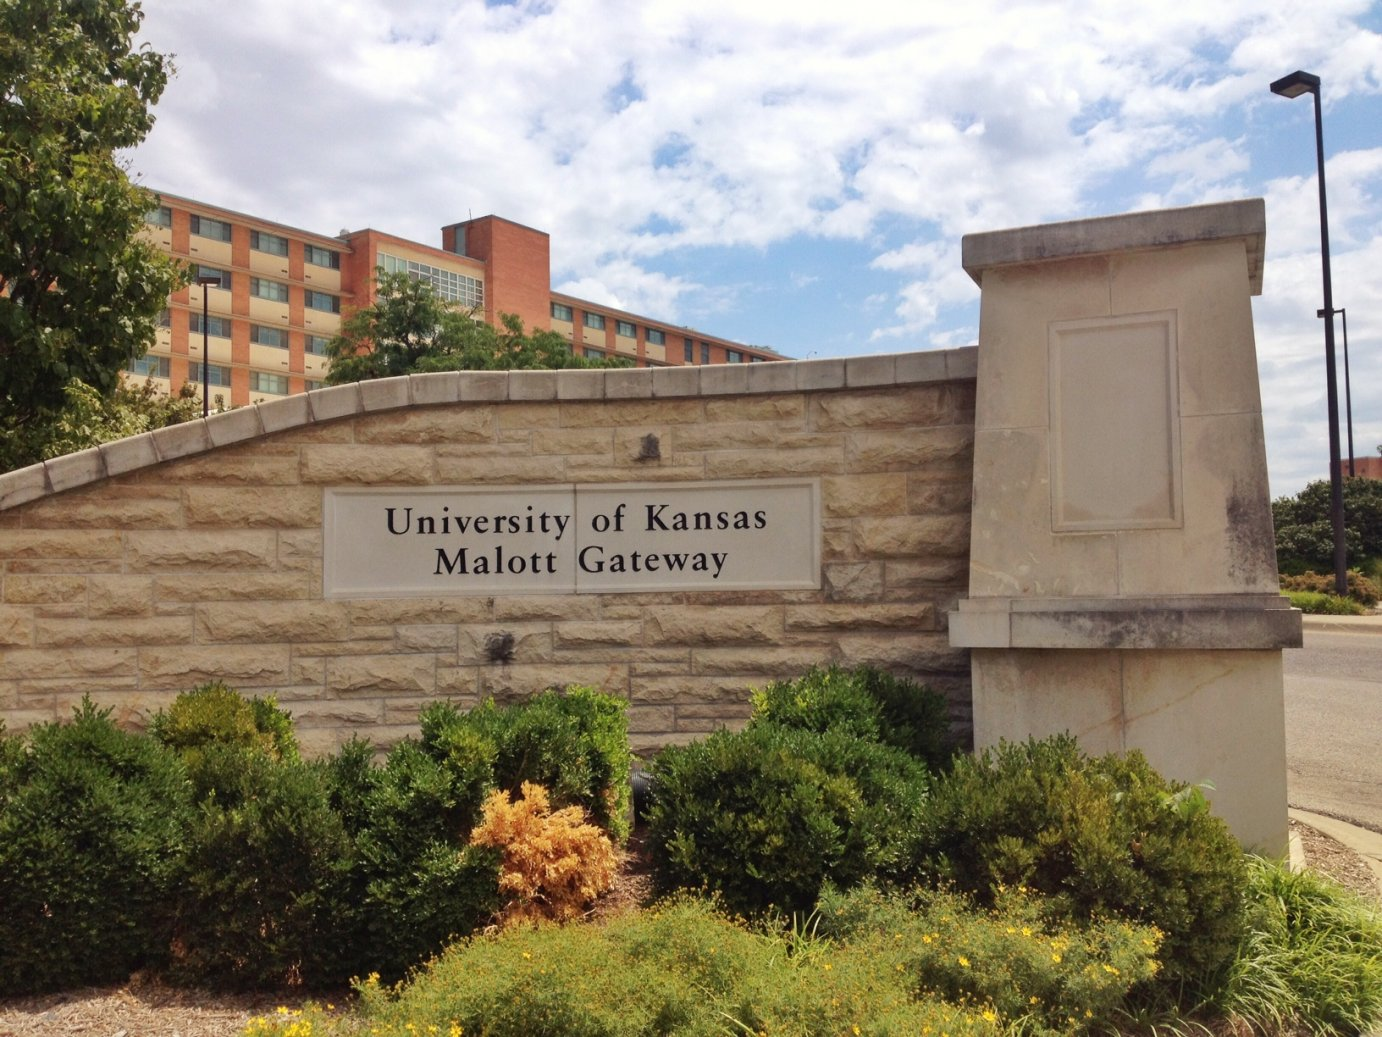 Sign near western entrance to University of Kansas (Photo by J. Schafer)